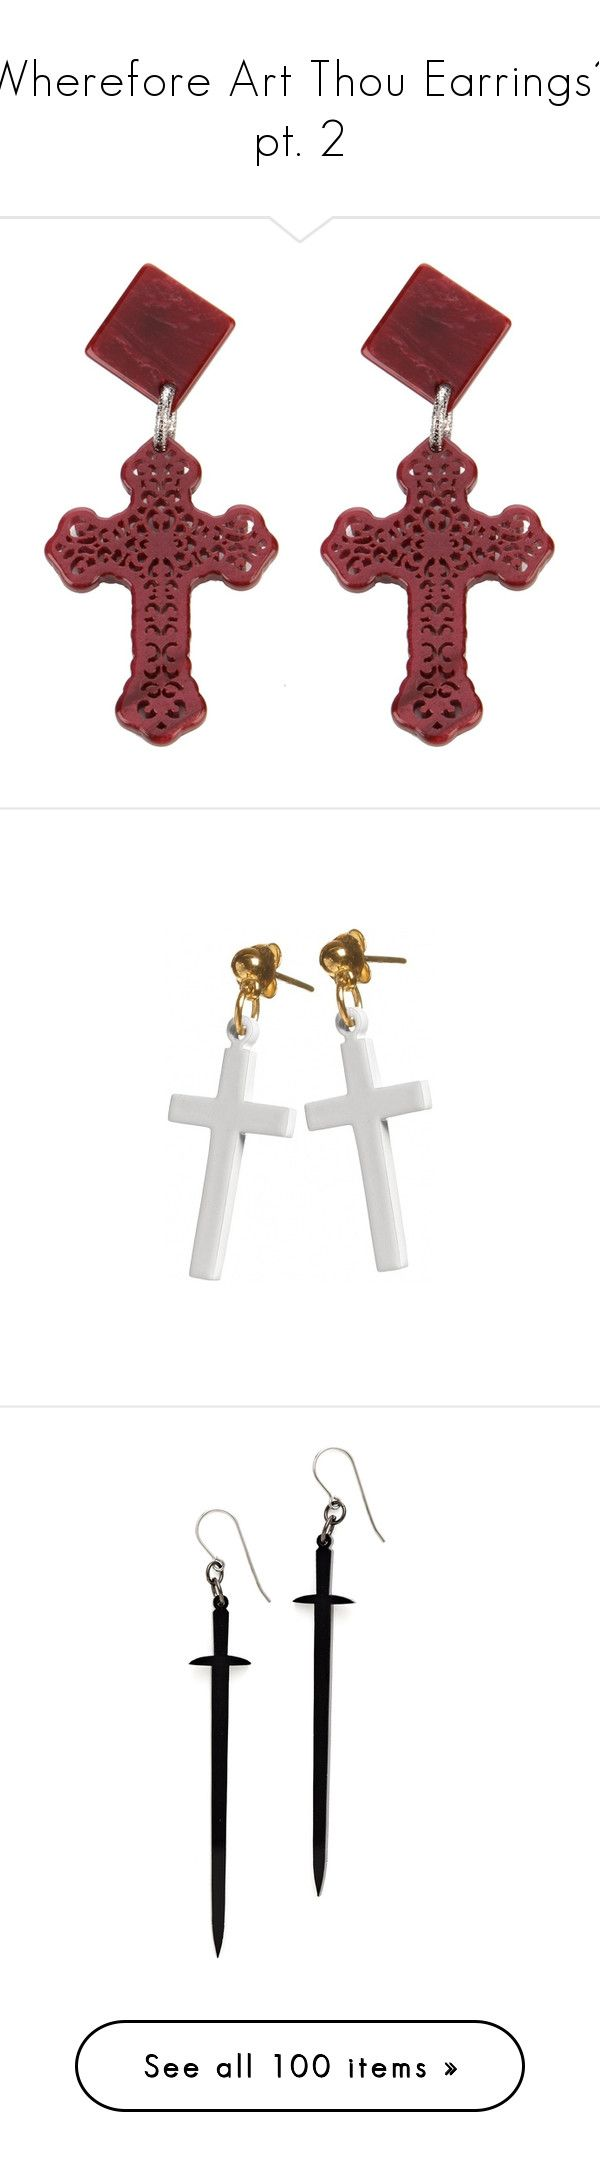 """""""Wherefore Art Thou Earrings? pt. 2"""" by pinkfloydnirvana333 ❤ liked on Polyvore featuring jewelry, earrings, cross jewelry, cross stud earrings, gothic earrings, diamond cross earrings, goth jewelry, accessories, fillers and vintage cross jewelry"""